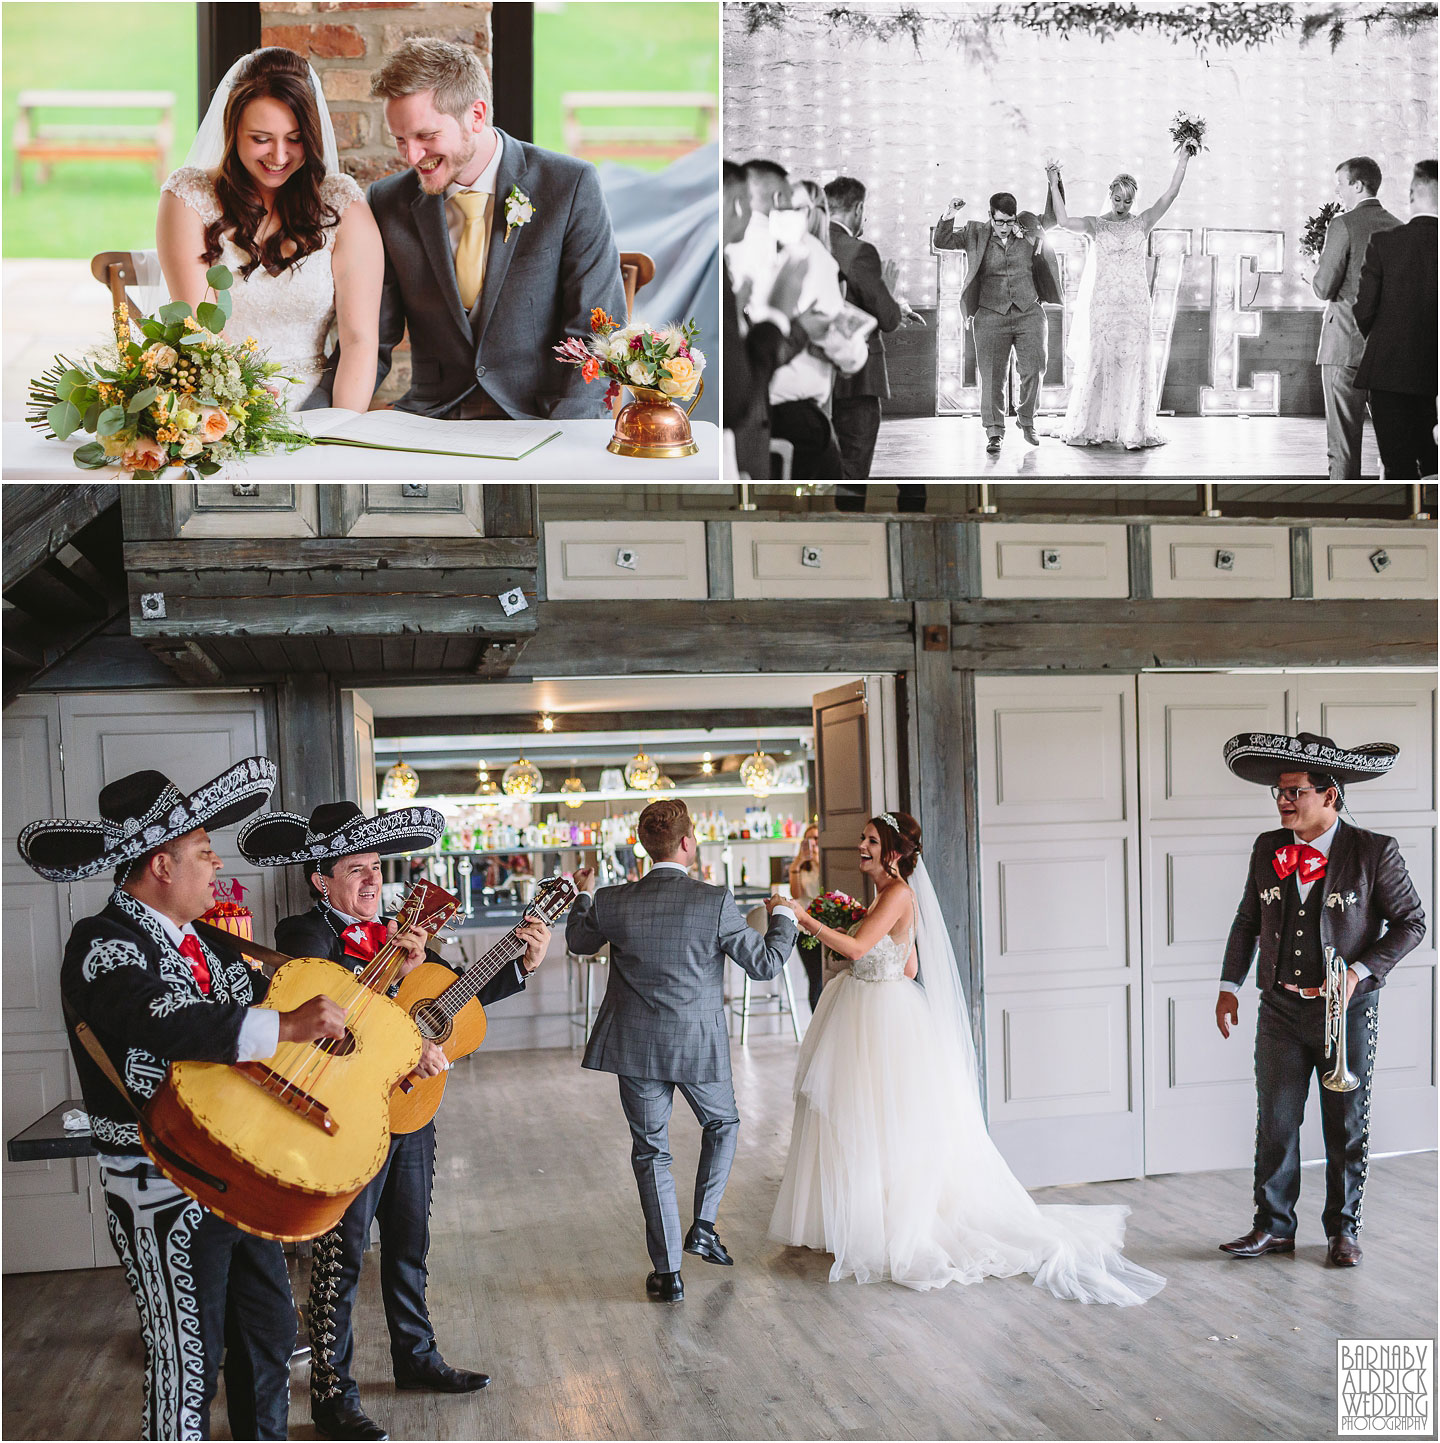 Mariachi band, Wedding at Yorkshire Wedding Barns, Amazing Yorkshire Wedding Photos, Best Yorkshire Wedding Photos 2018